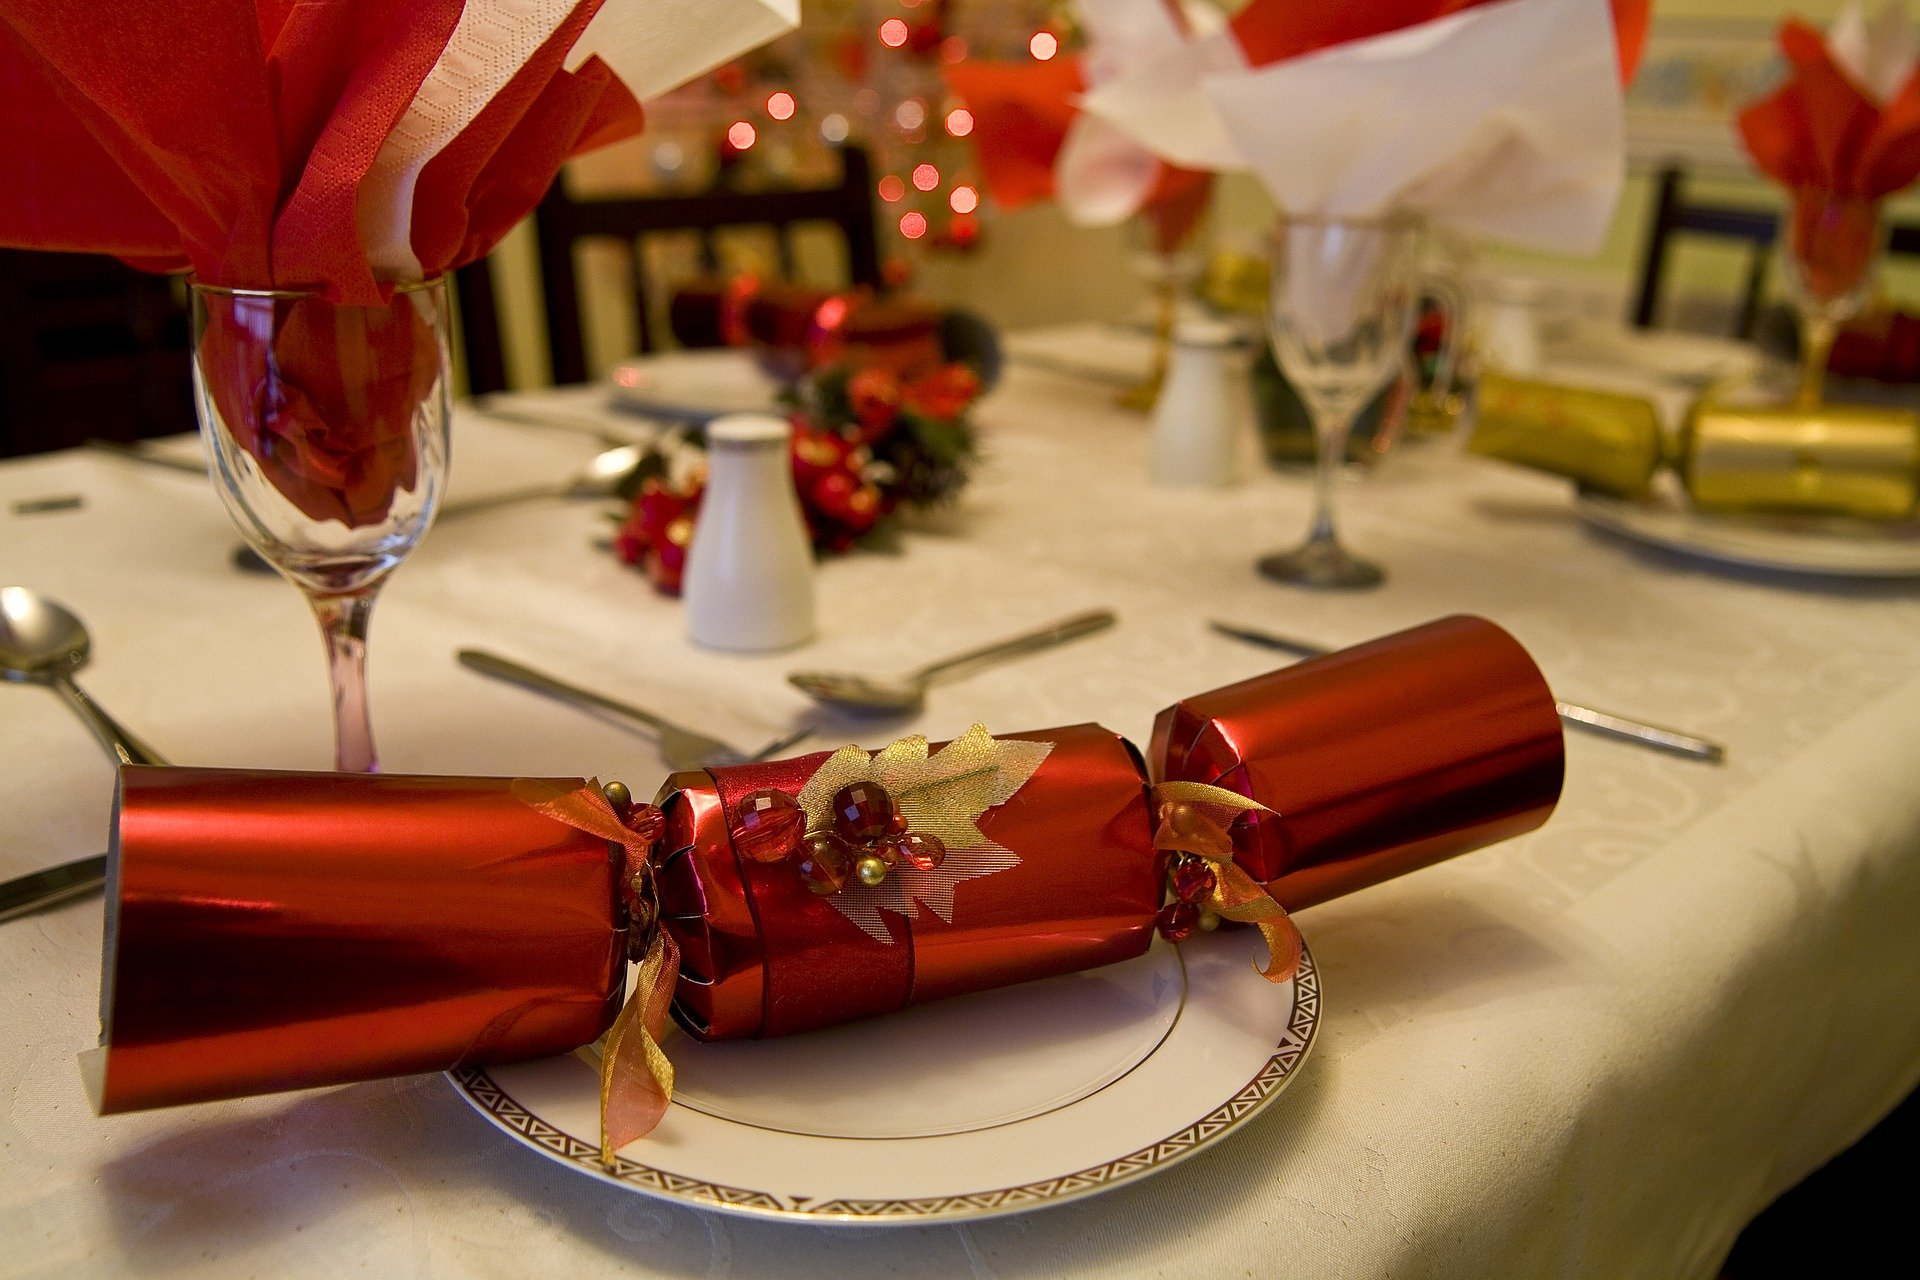 Red Christmas cracker on a plate